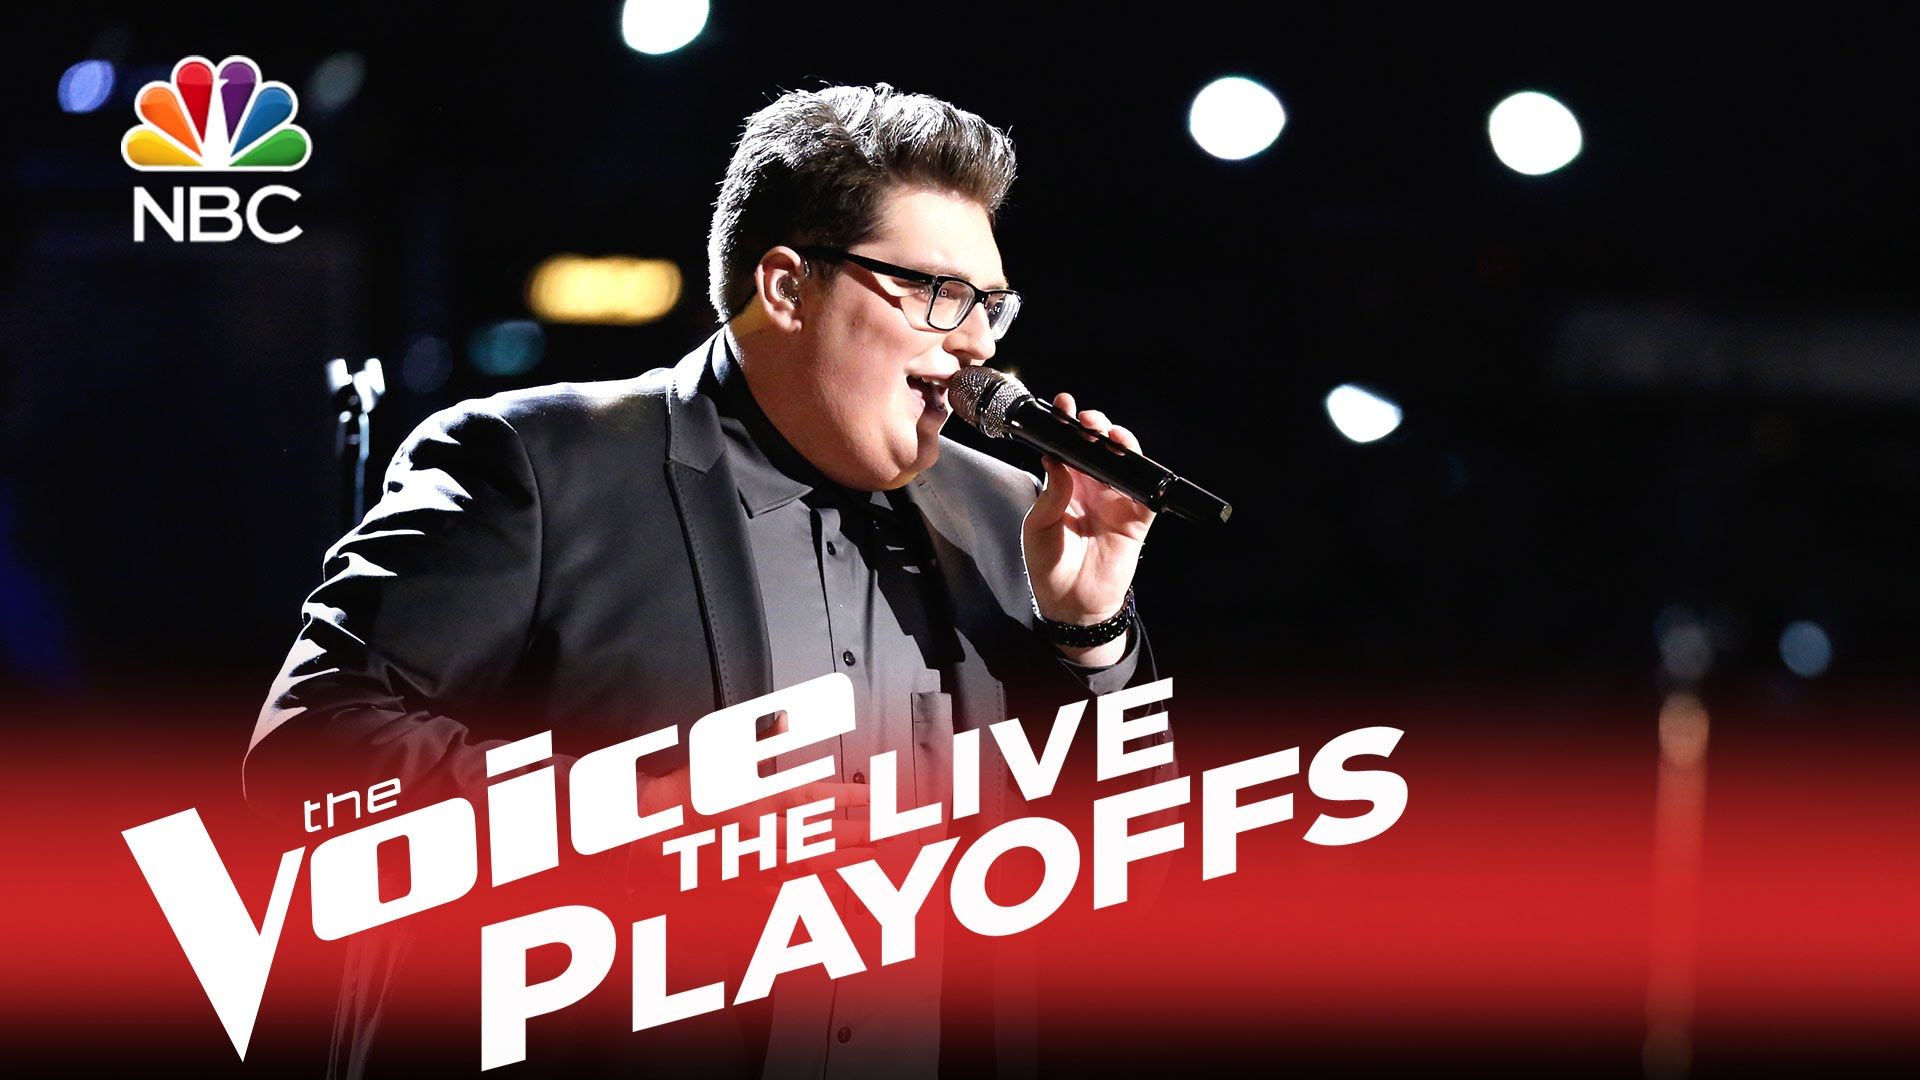 The Voice\': Jordan Smith shoots into iTunes top 3 with Beyonce ...